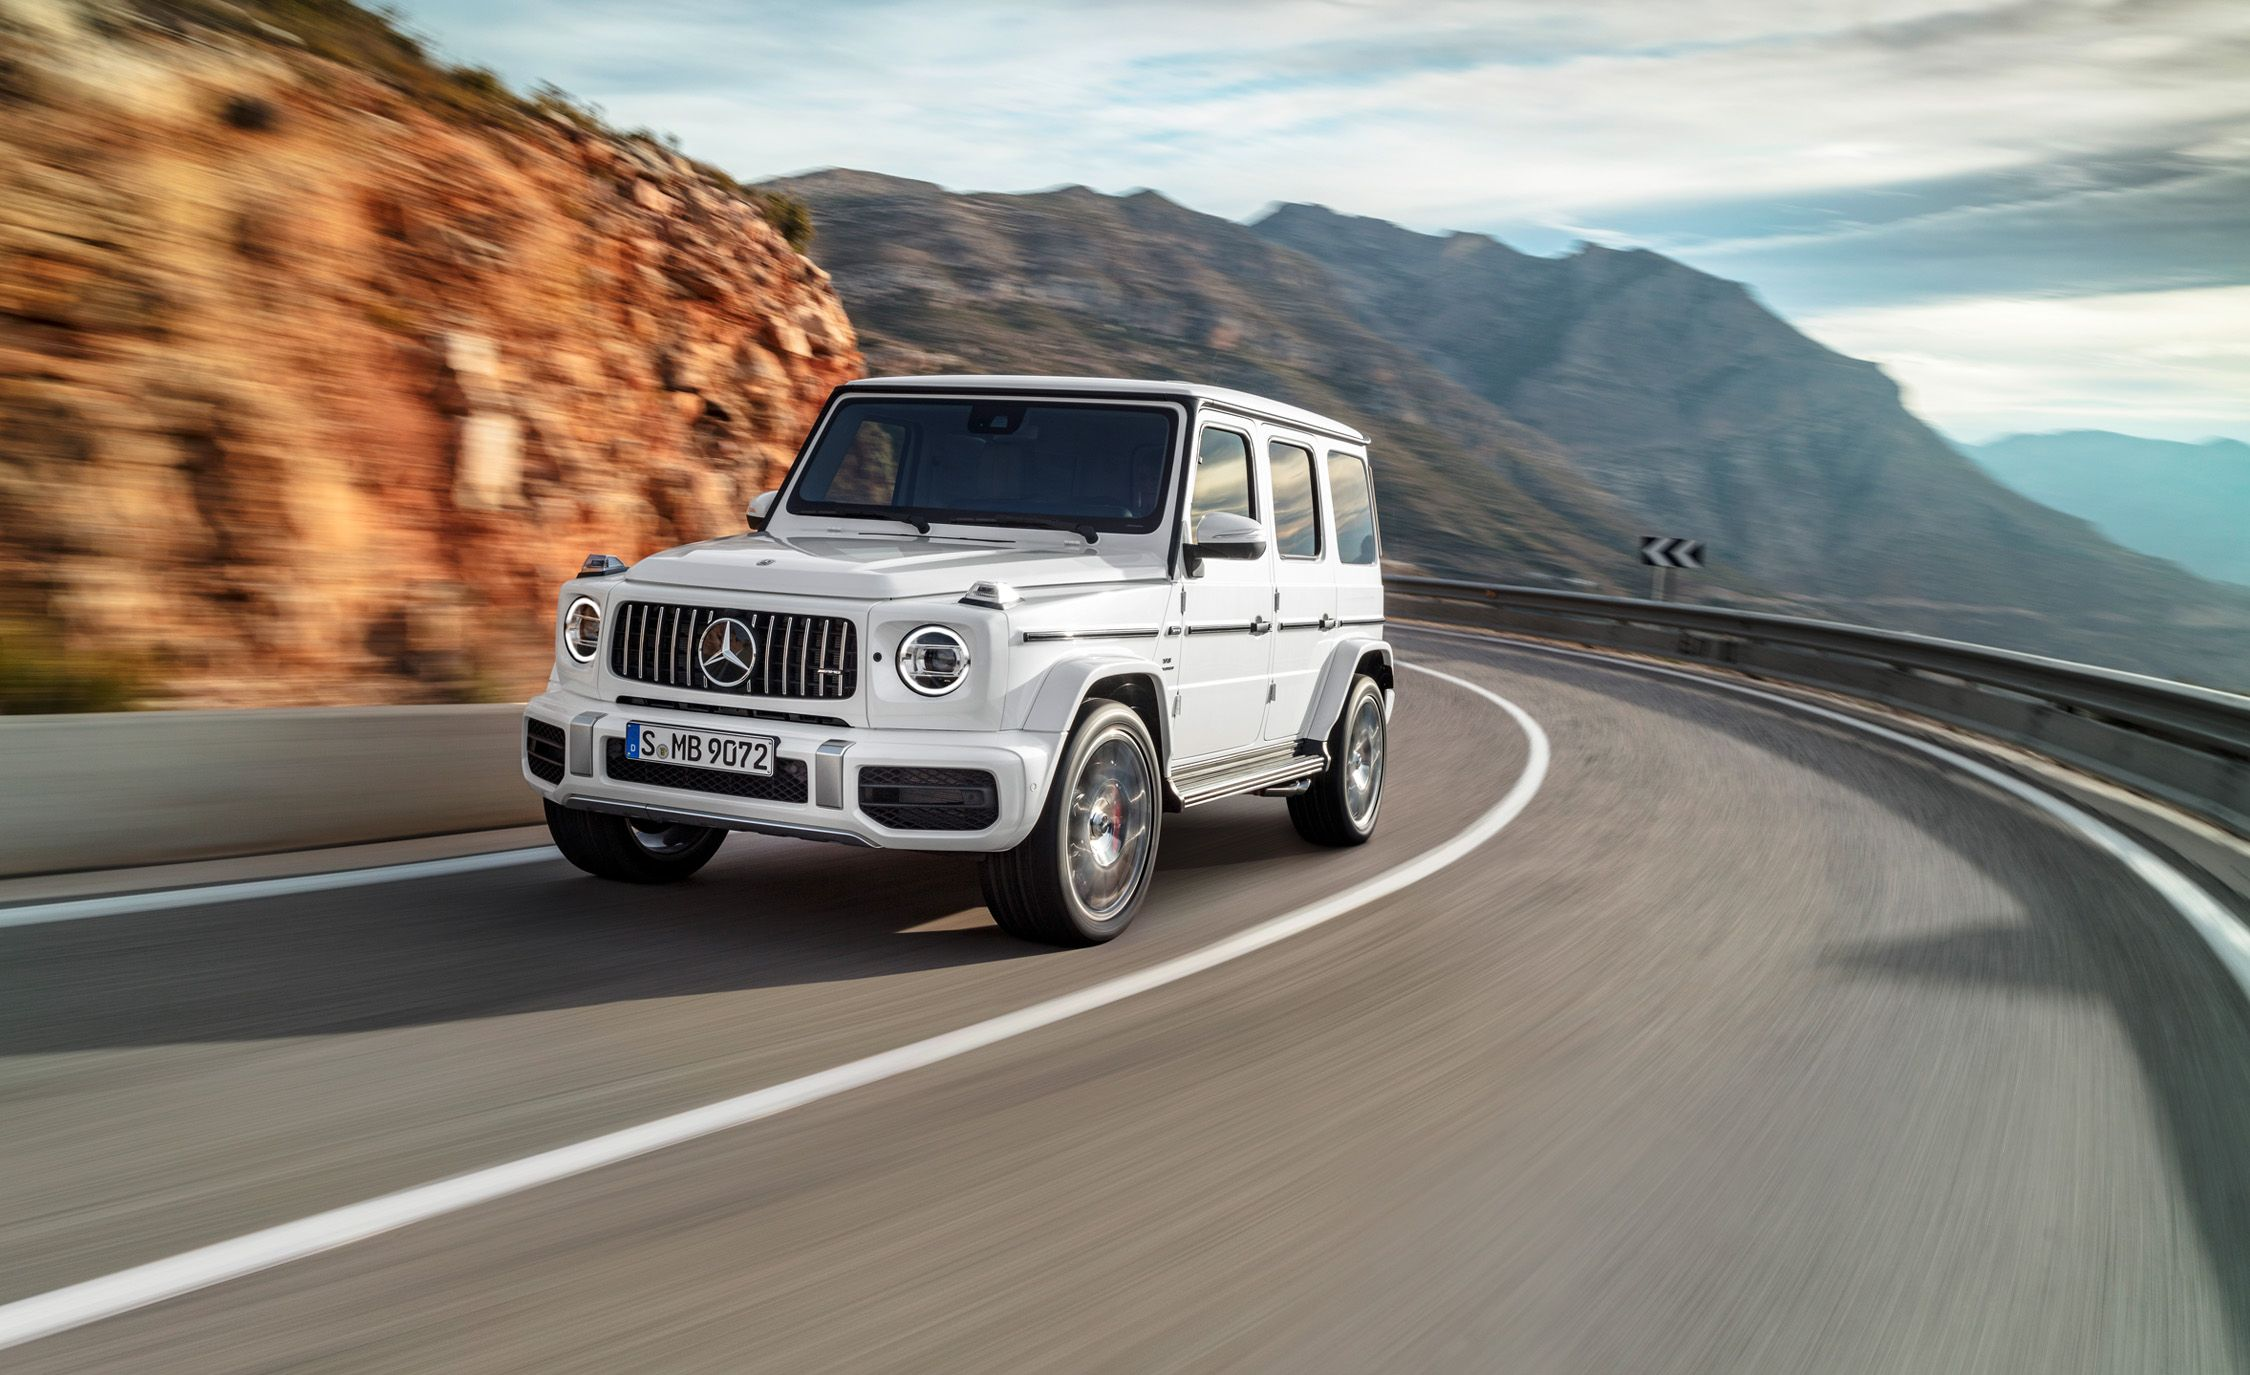 Mercedes amg g63 g65 4matic reviews mercedes amg g63 for Mercedes benz 4matic meaning